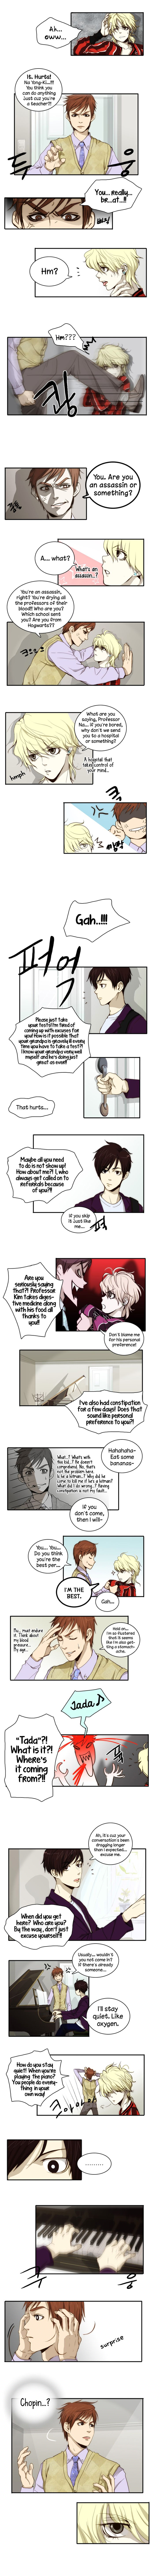 My Oh 1 Page 2